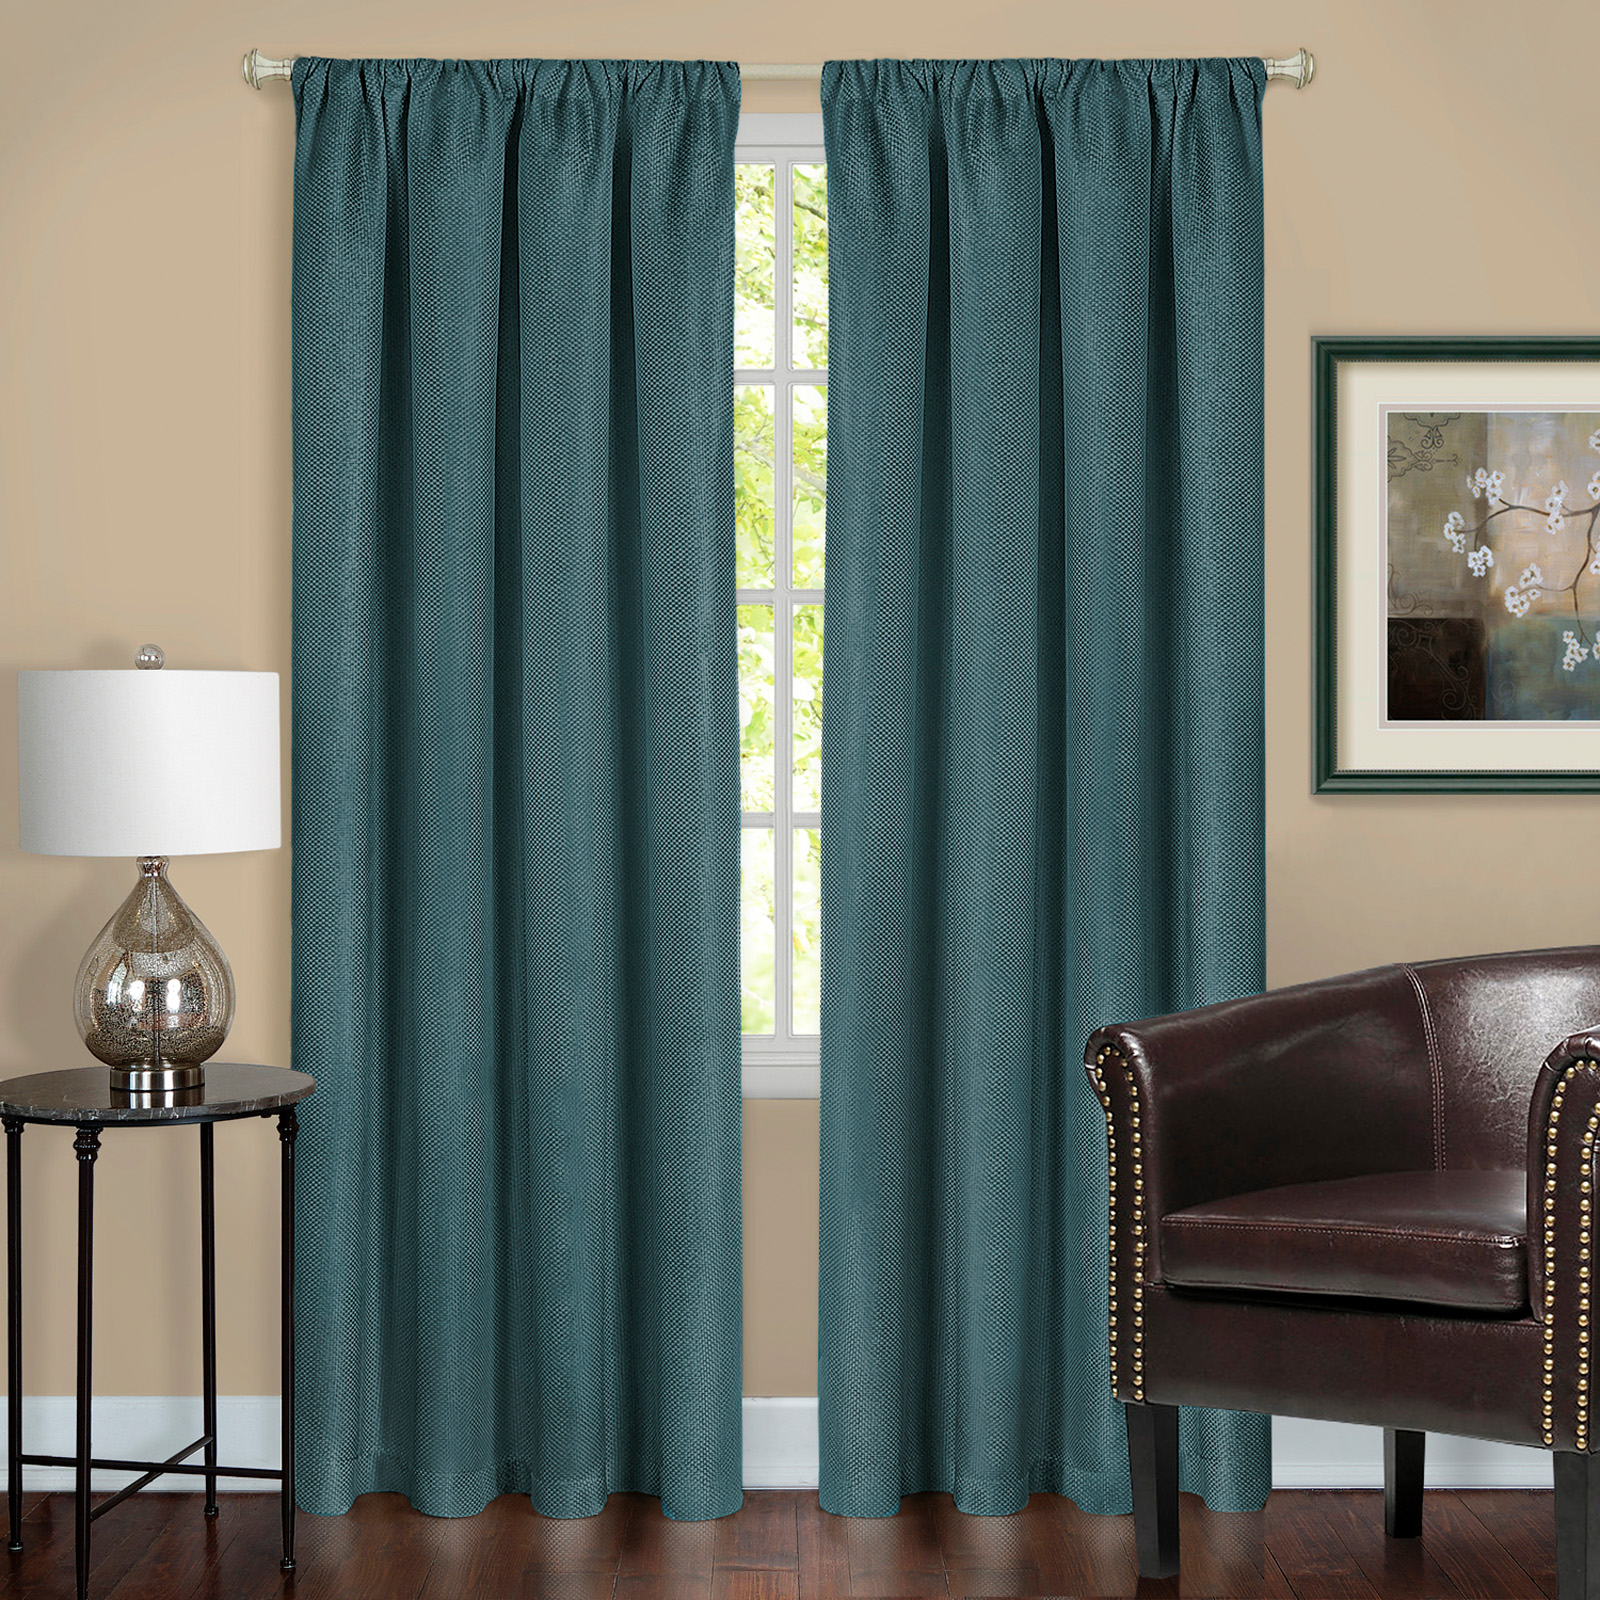 Teal Blackout Curtains Achim Harmony Blackout Curtain Panel Teal 63l X 52w In